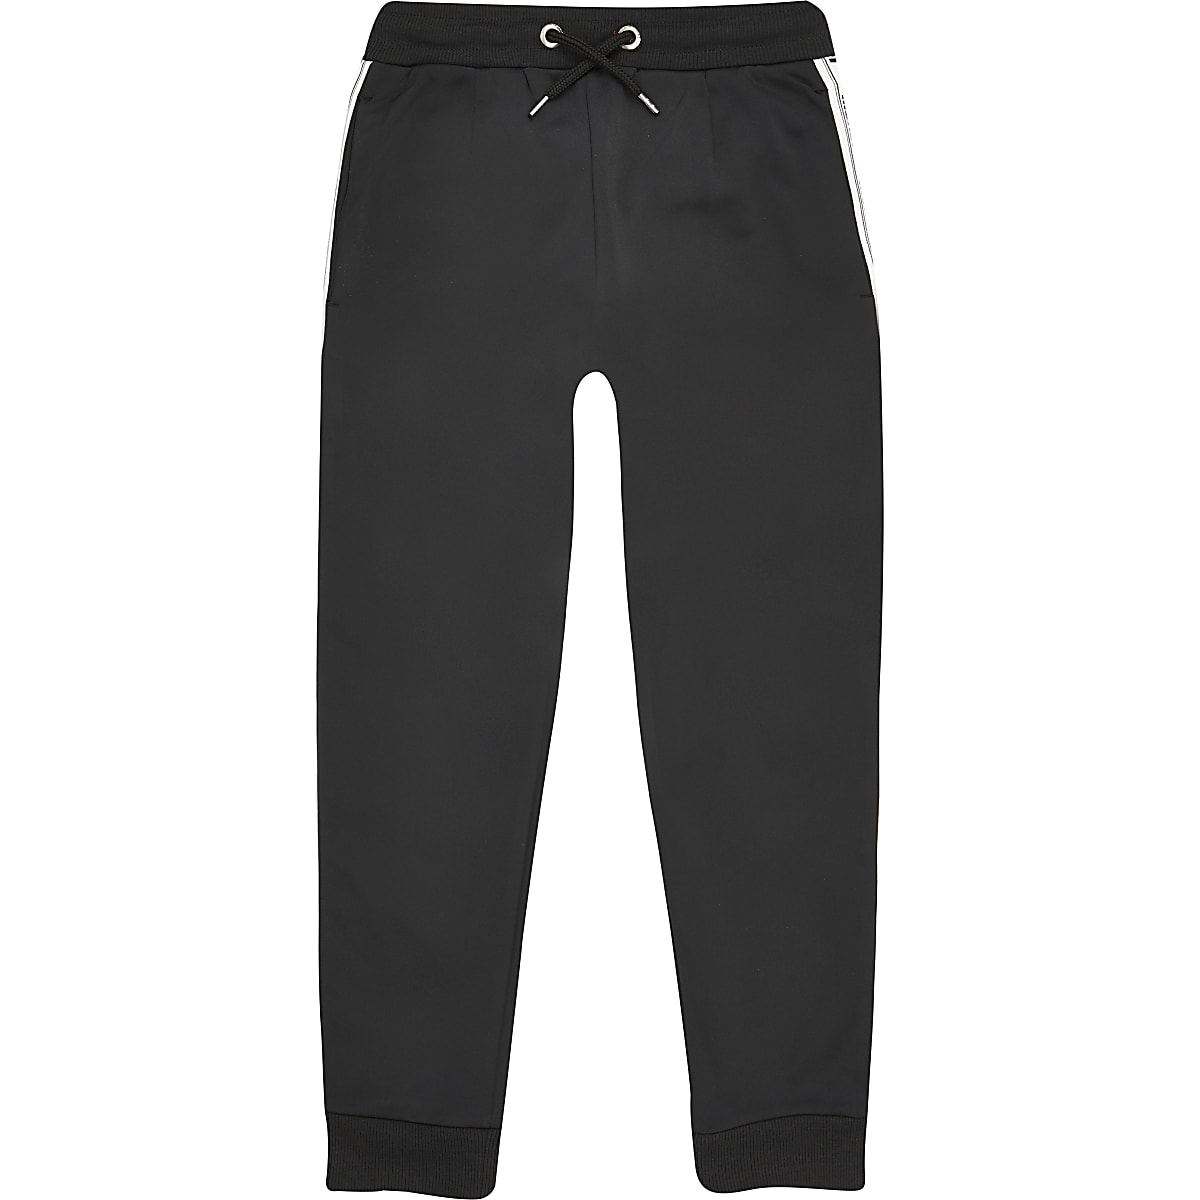 Zwarte Joggingbroek Jongens.Boys Black Money Joggers